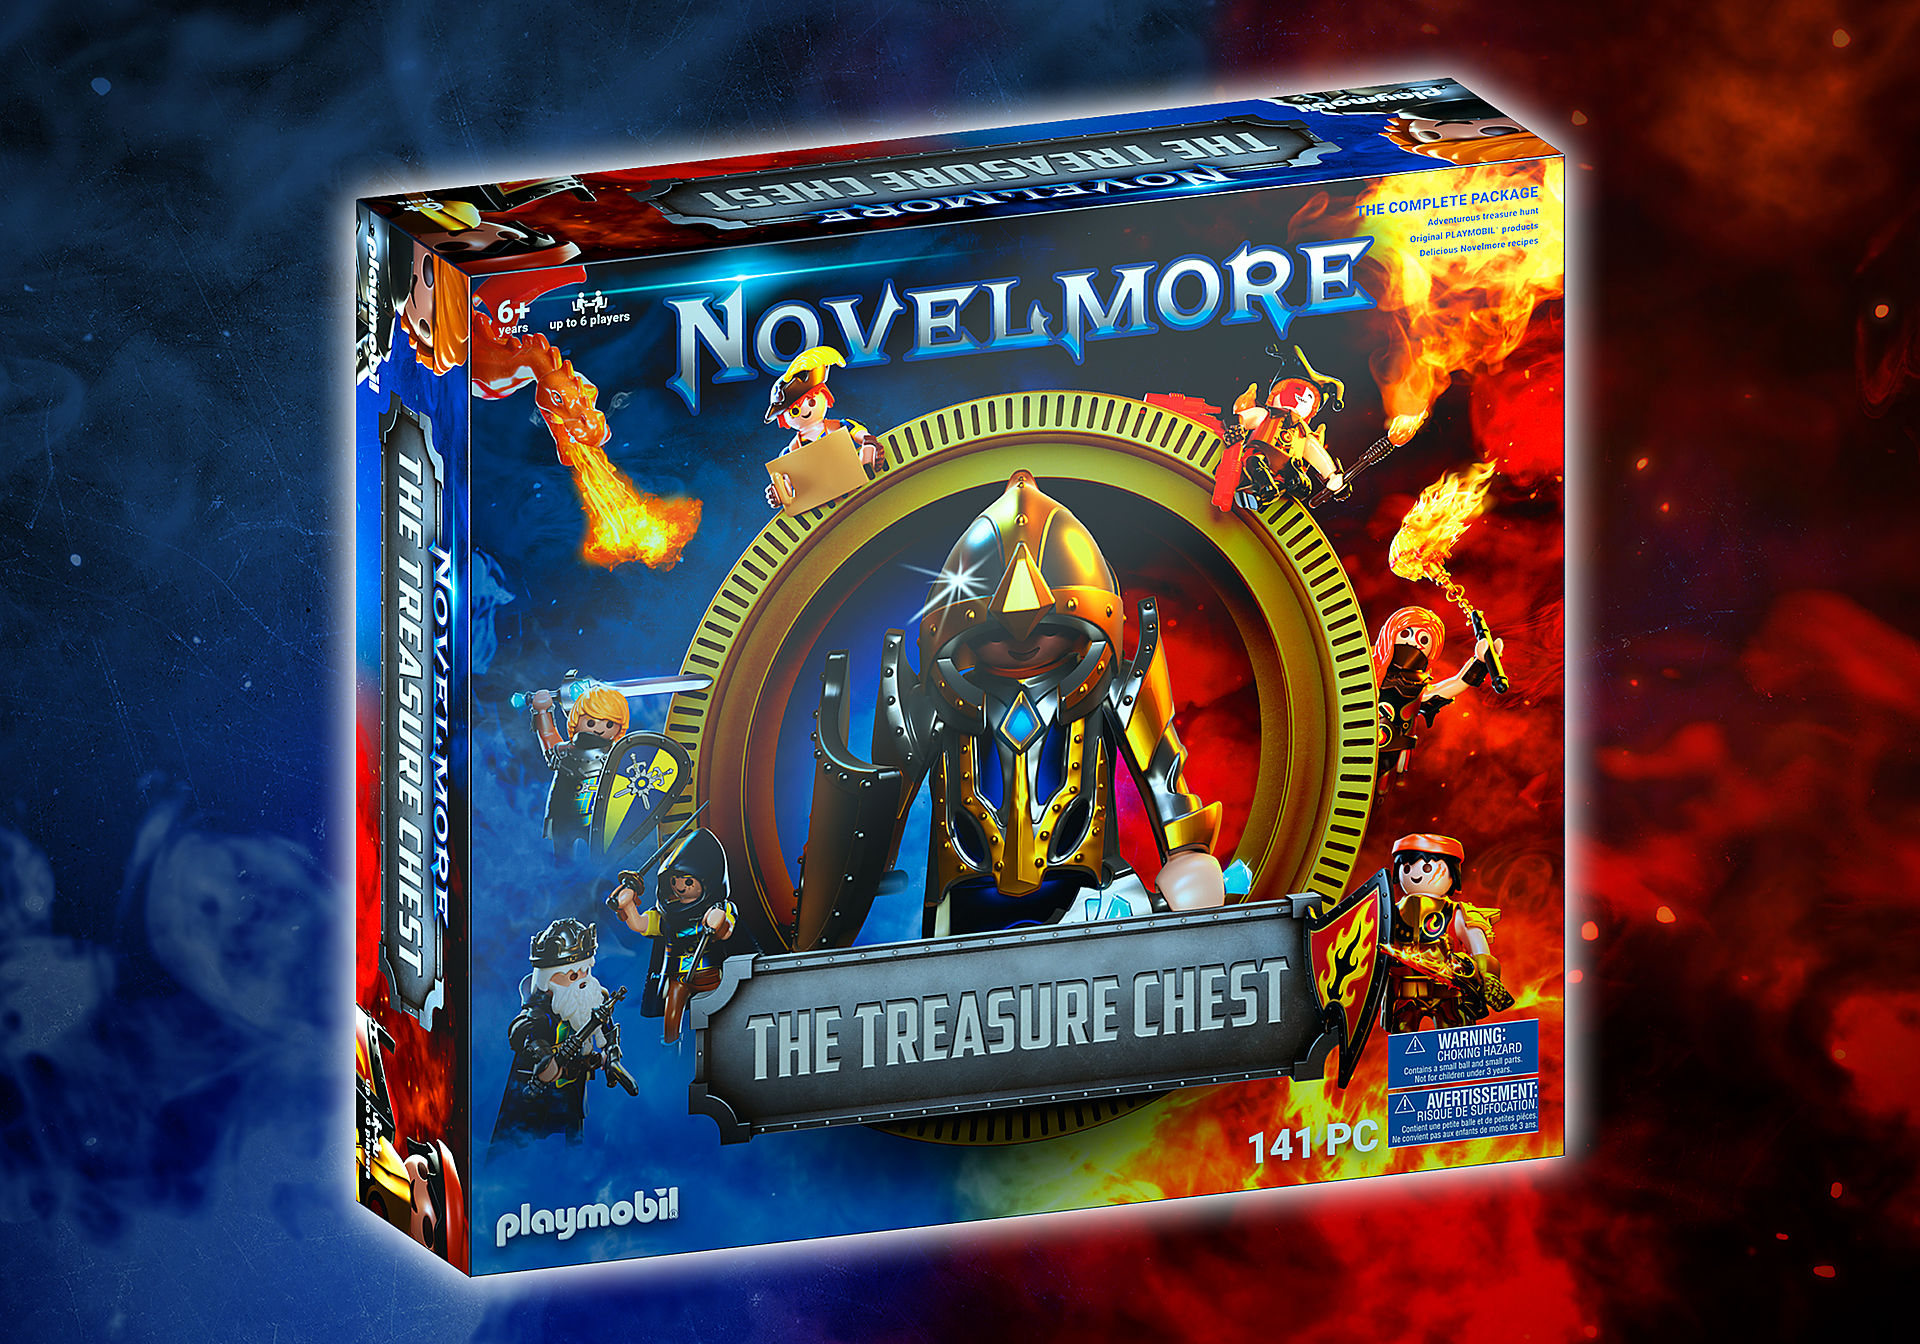 70847 PLAYMOBIL®Box: NOVELMORE The Treasure Chest family event zoom image1